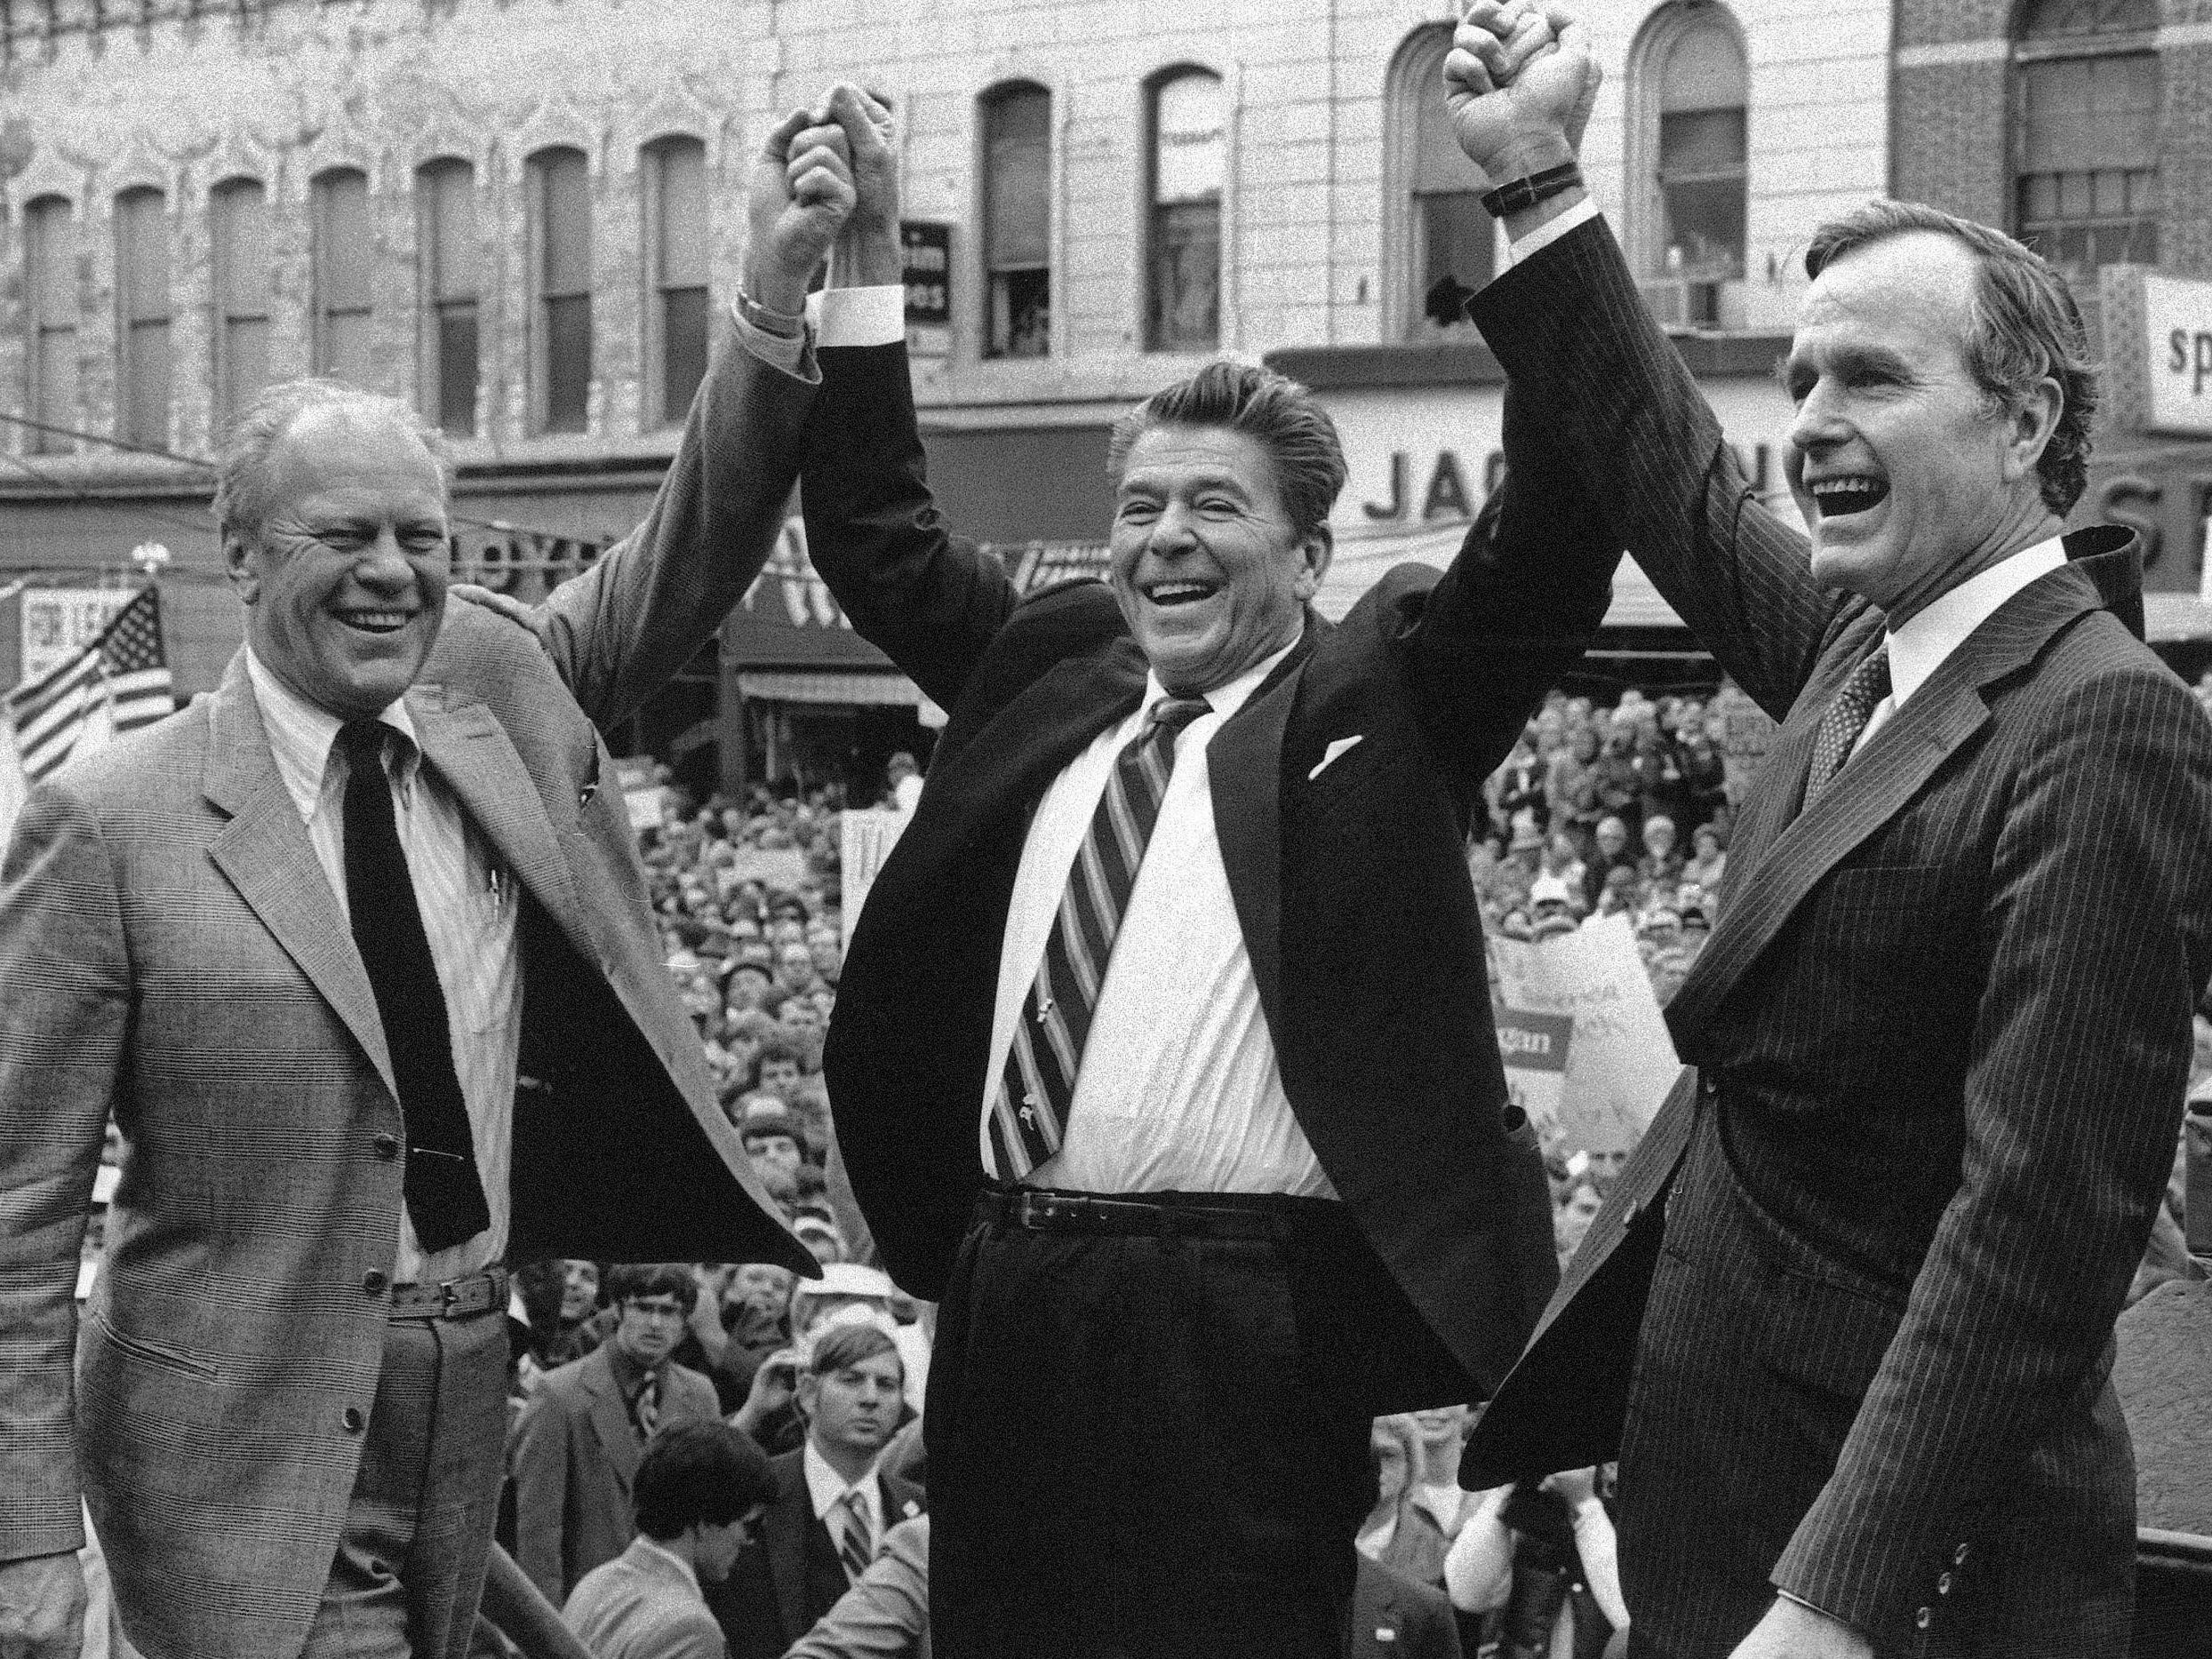 In this Nov. 3, 1980 photo, former President Gerald Ford lends his support to Republican presidential candidate Ronald Reagan and his running mate, George H.W. Bush in Peoria, Ill.